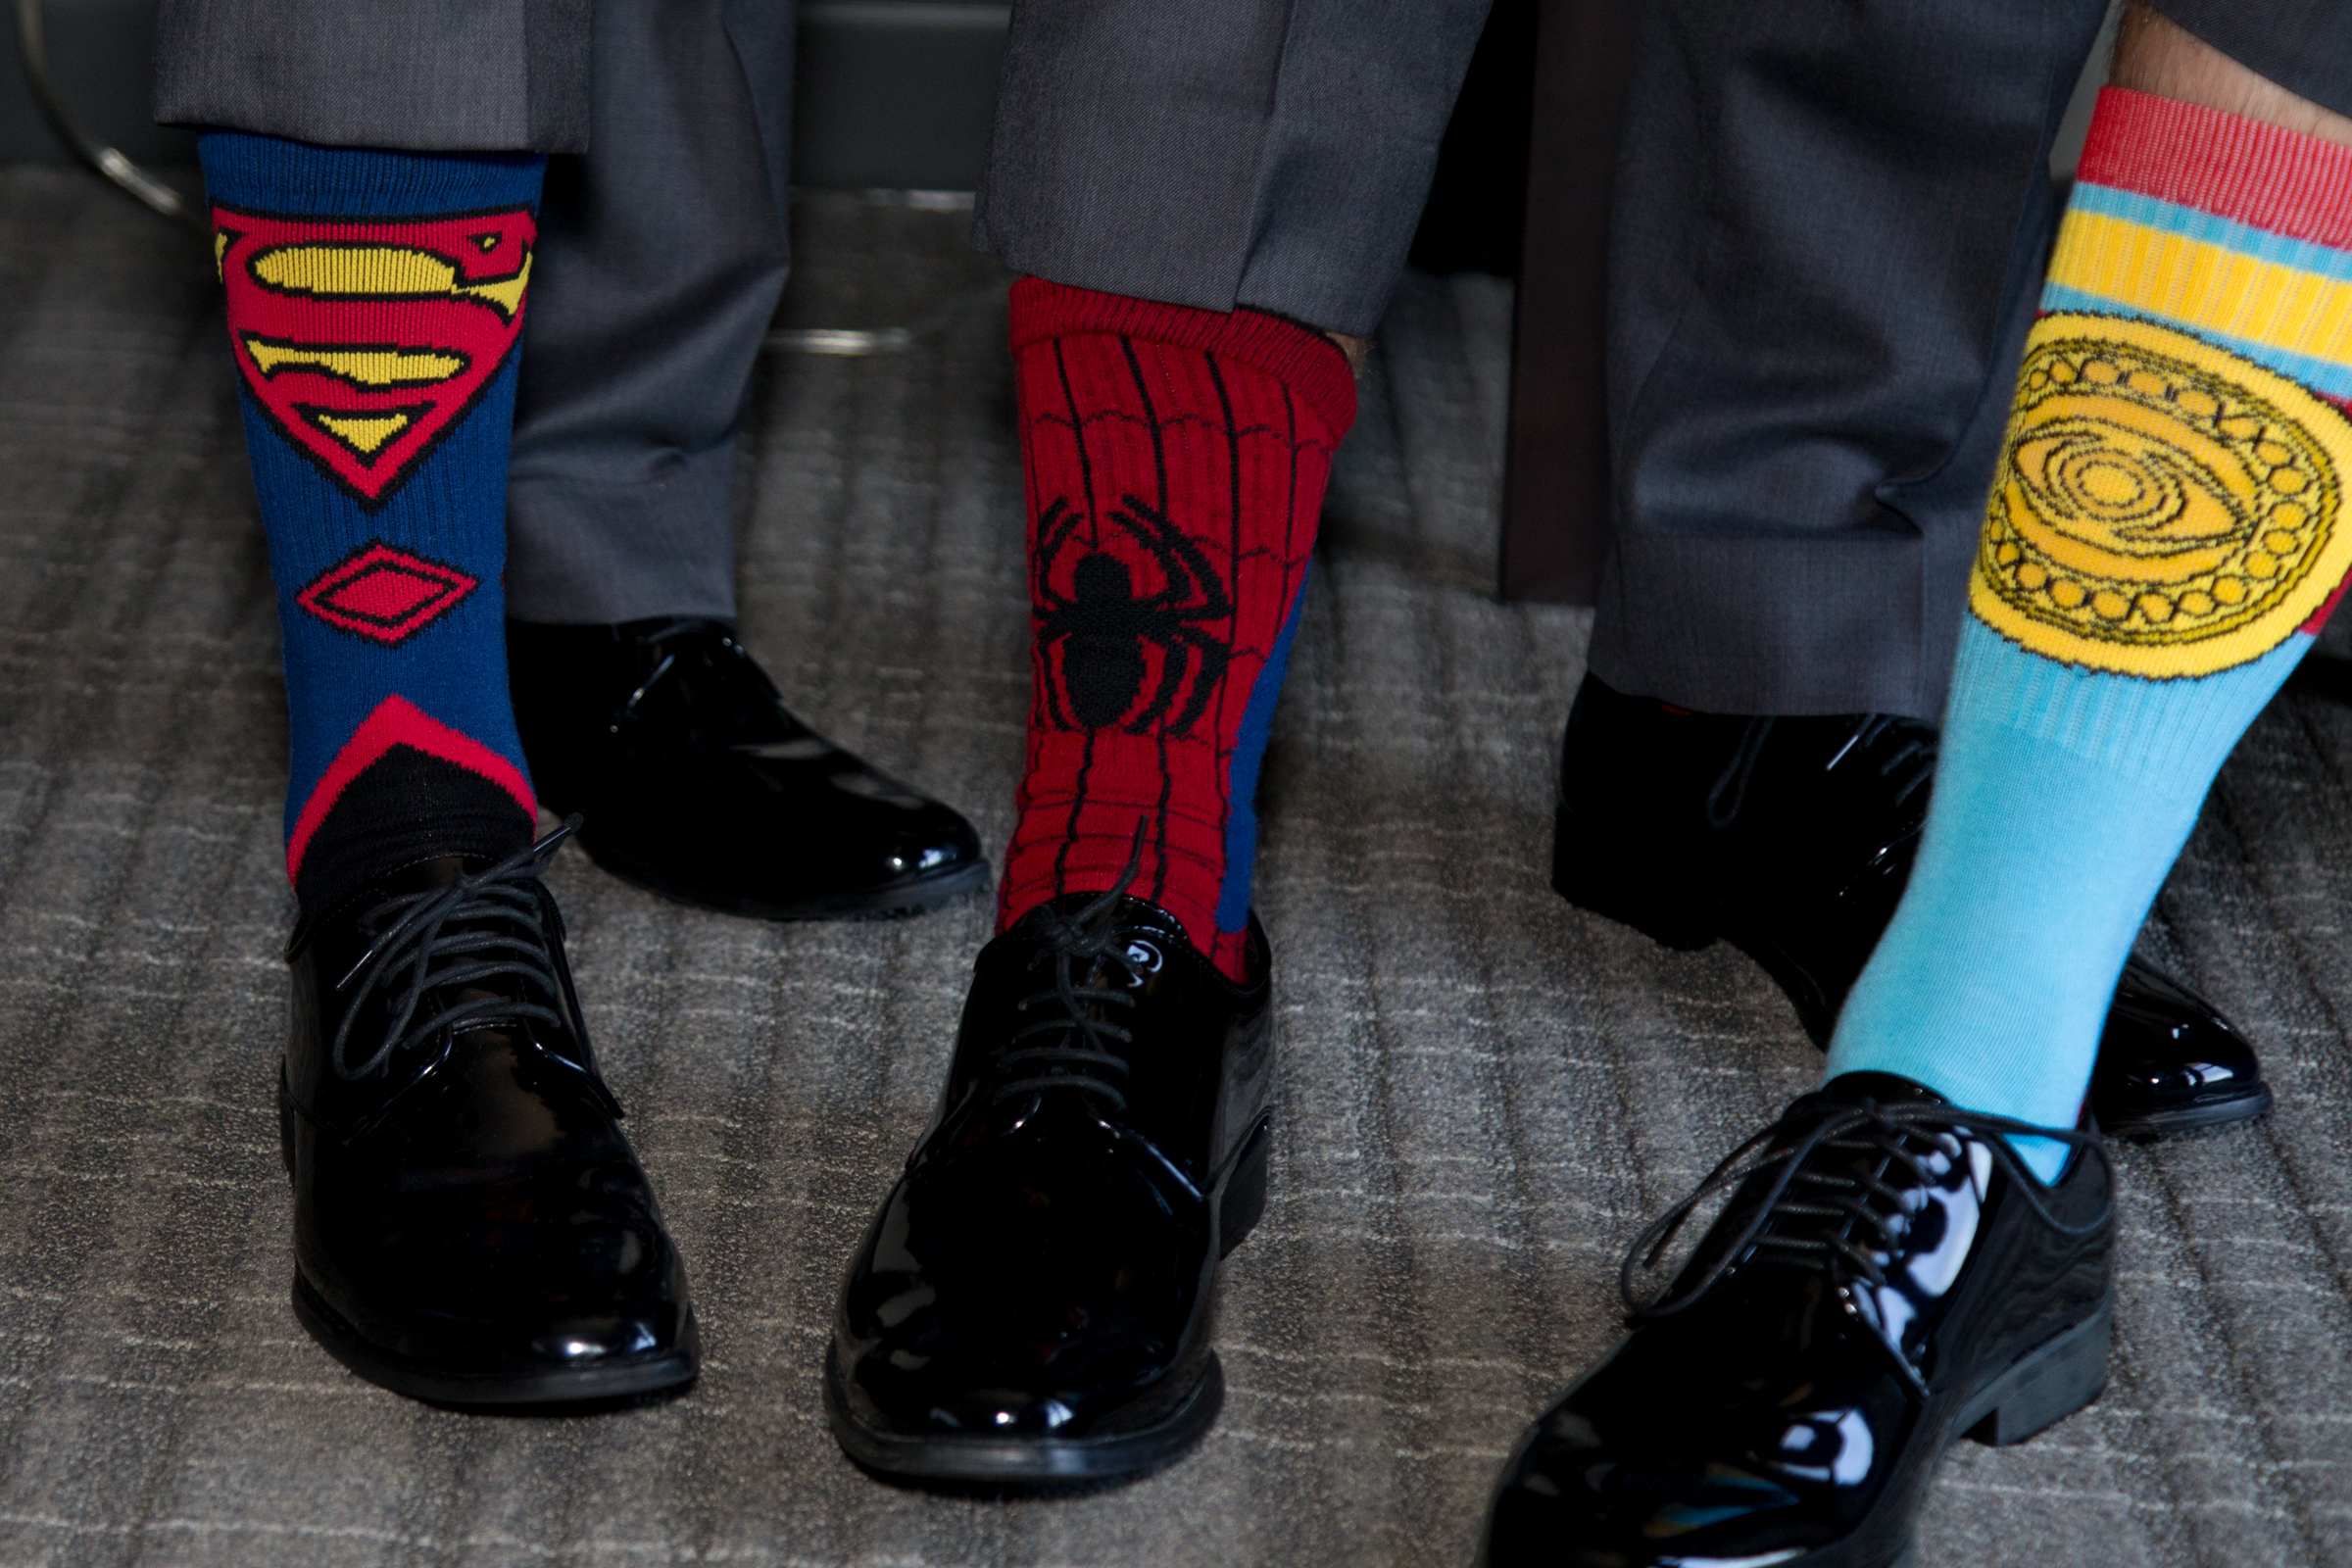 trump-national-golf-course-super-hero-socks-photograph